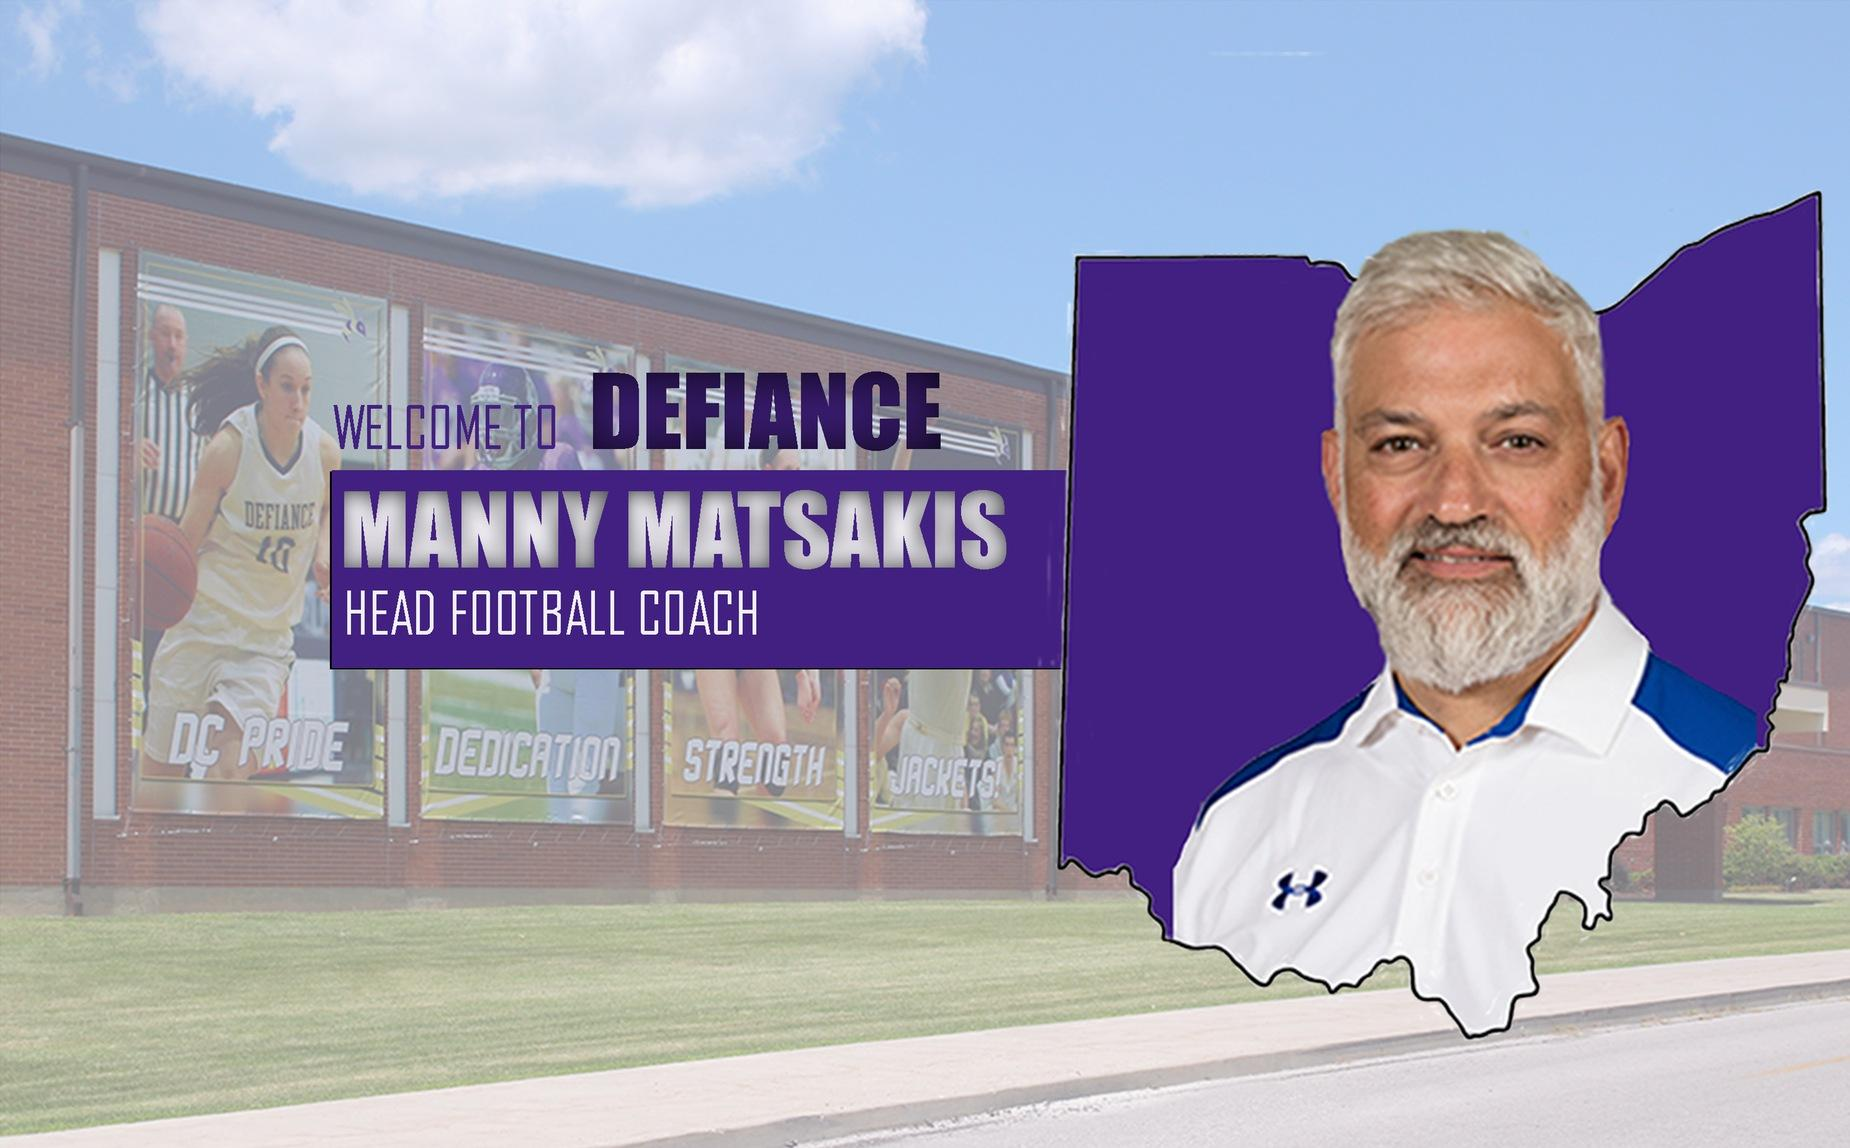 Defiance Selects Manny Matsakis as Head Football Coach